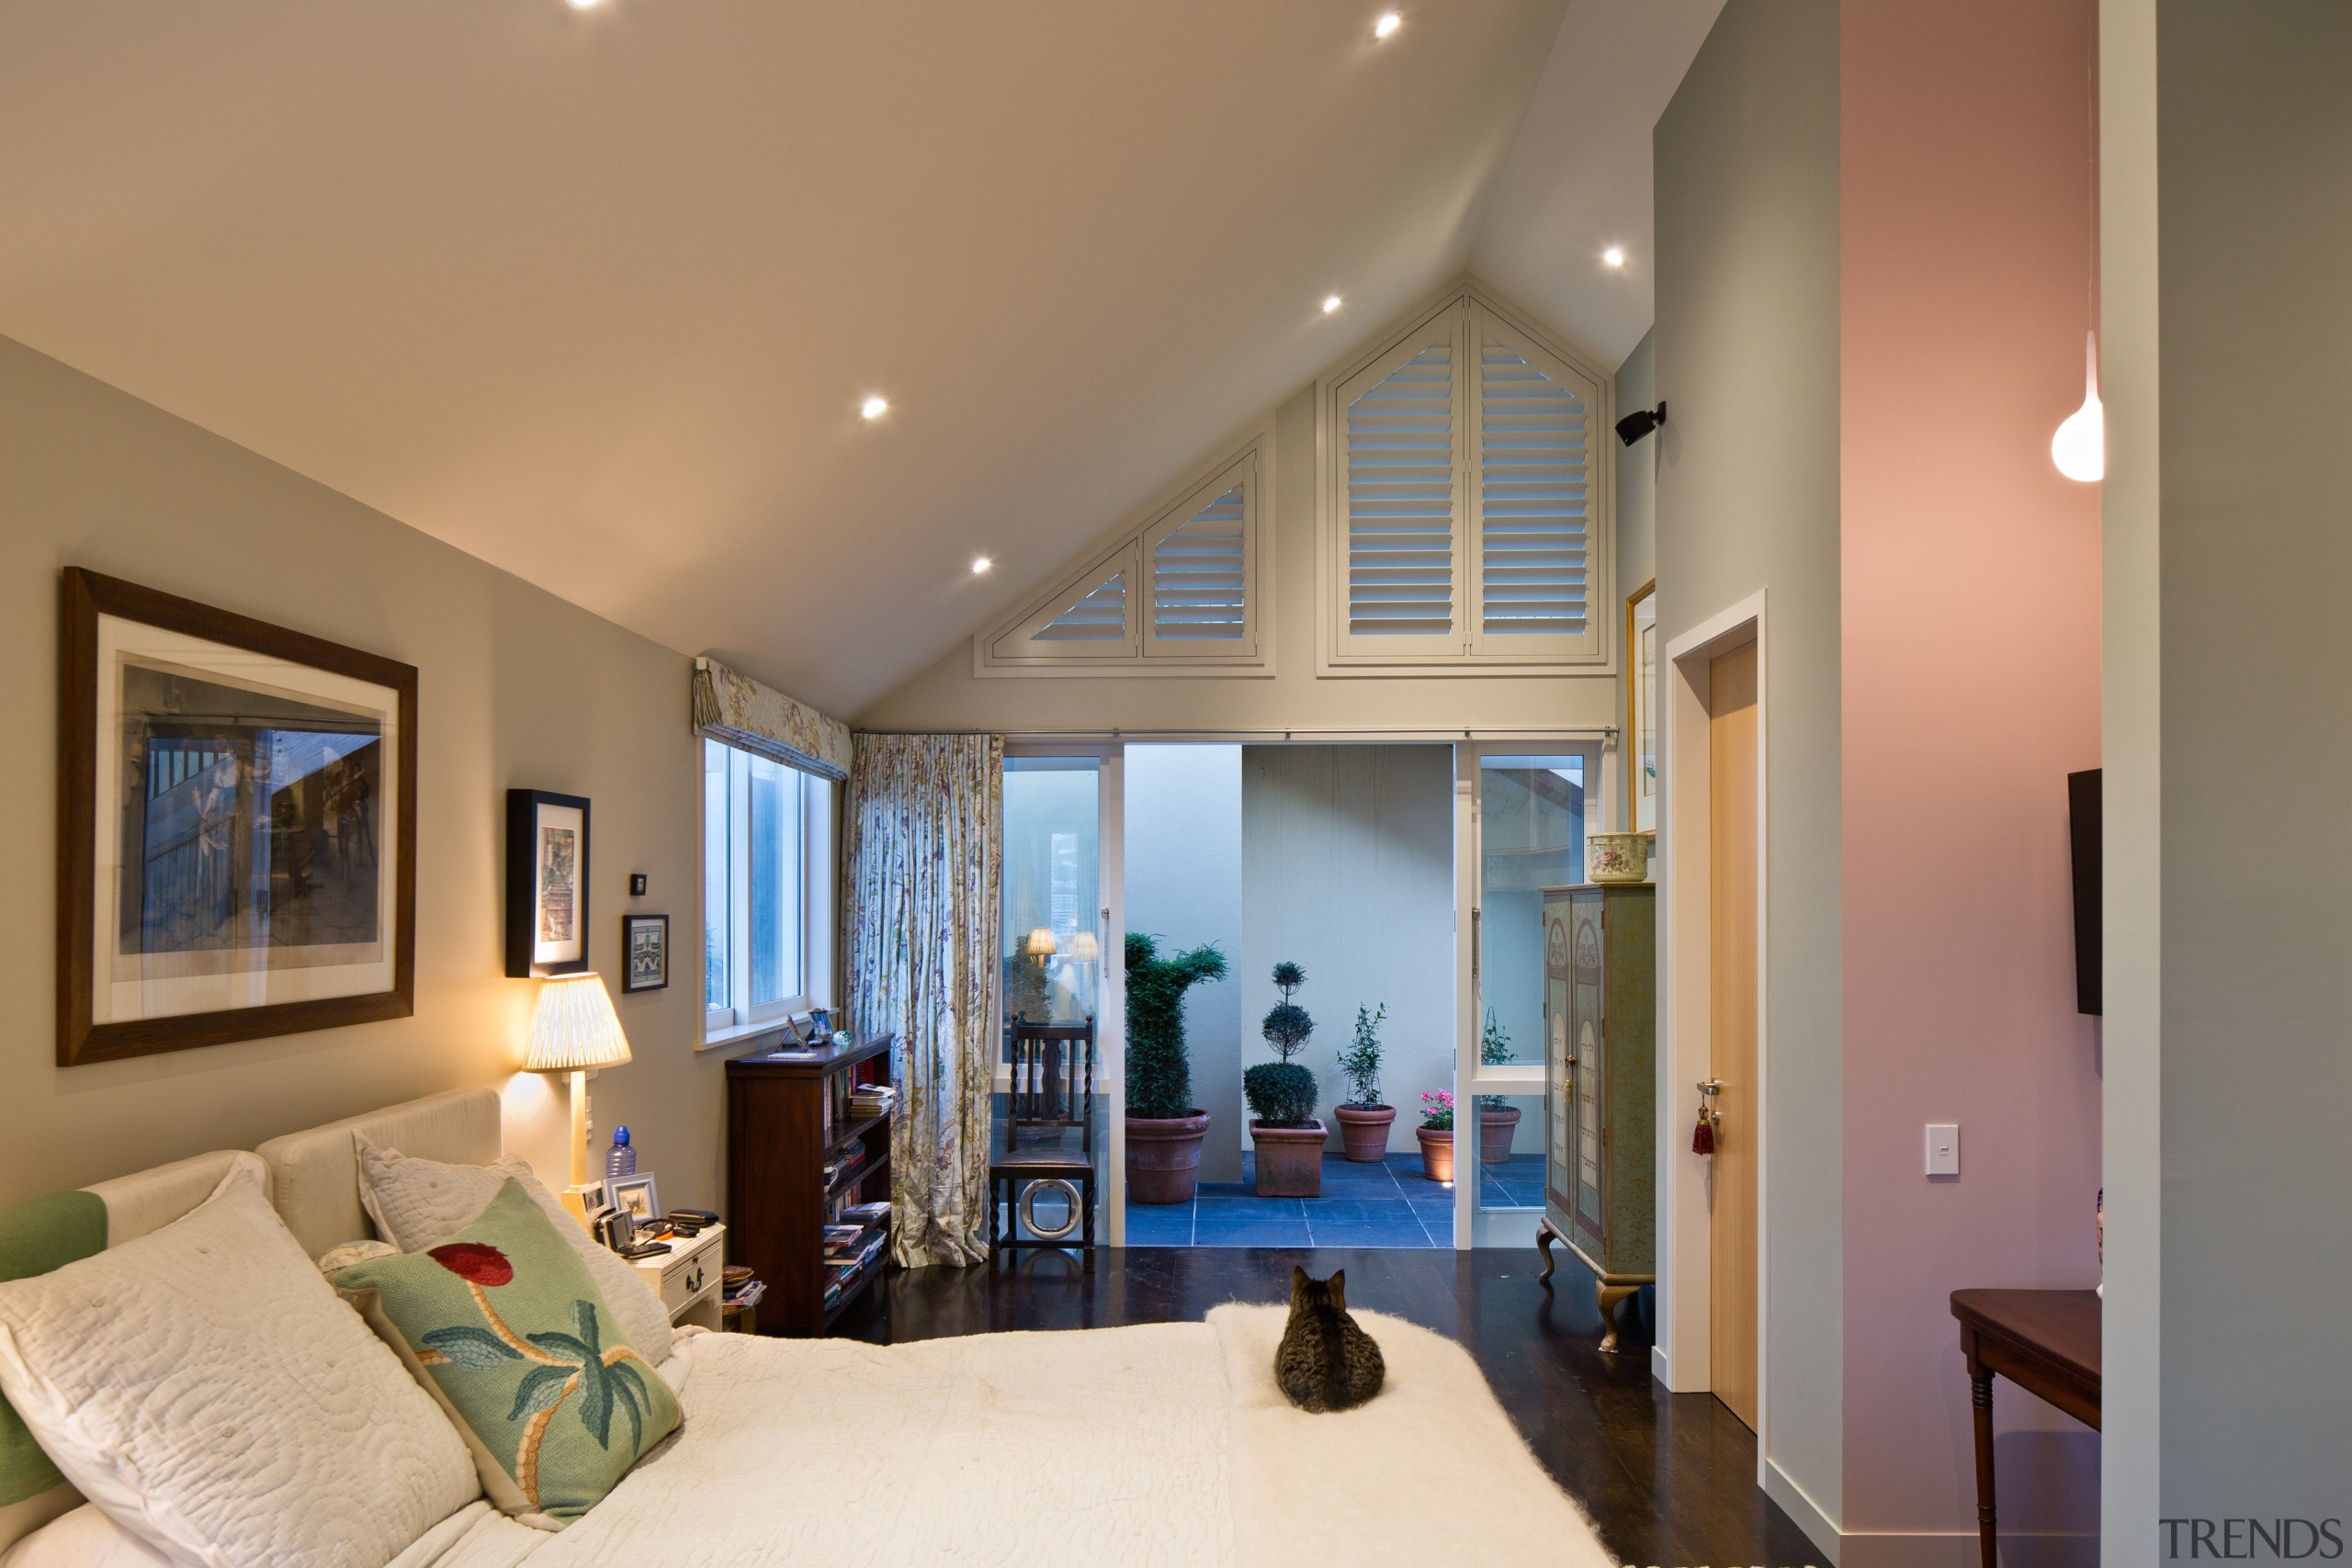 This master bedroom opens to a privarte courtyard. ceiling, estate, floor, home, interior design, living room, property, real estate, room, window, brown, orange